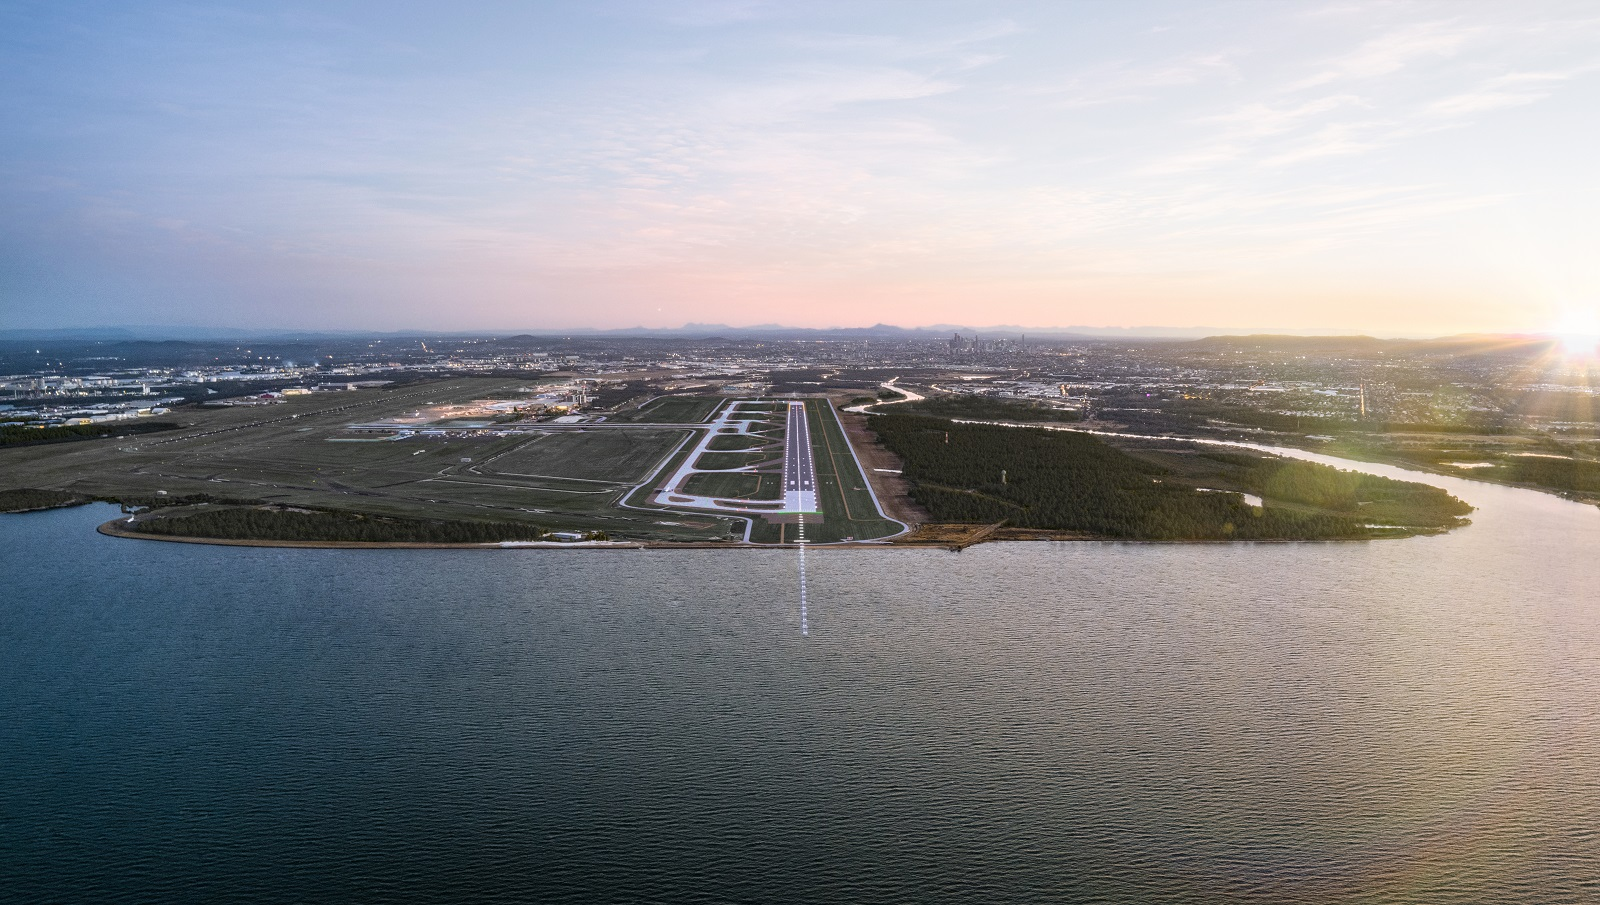 Ribbon cutting at Brisbane Airport's newest runway